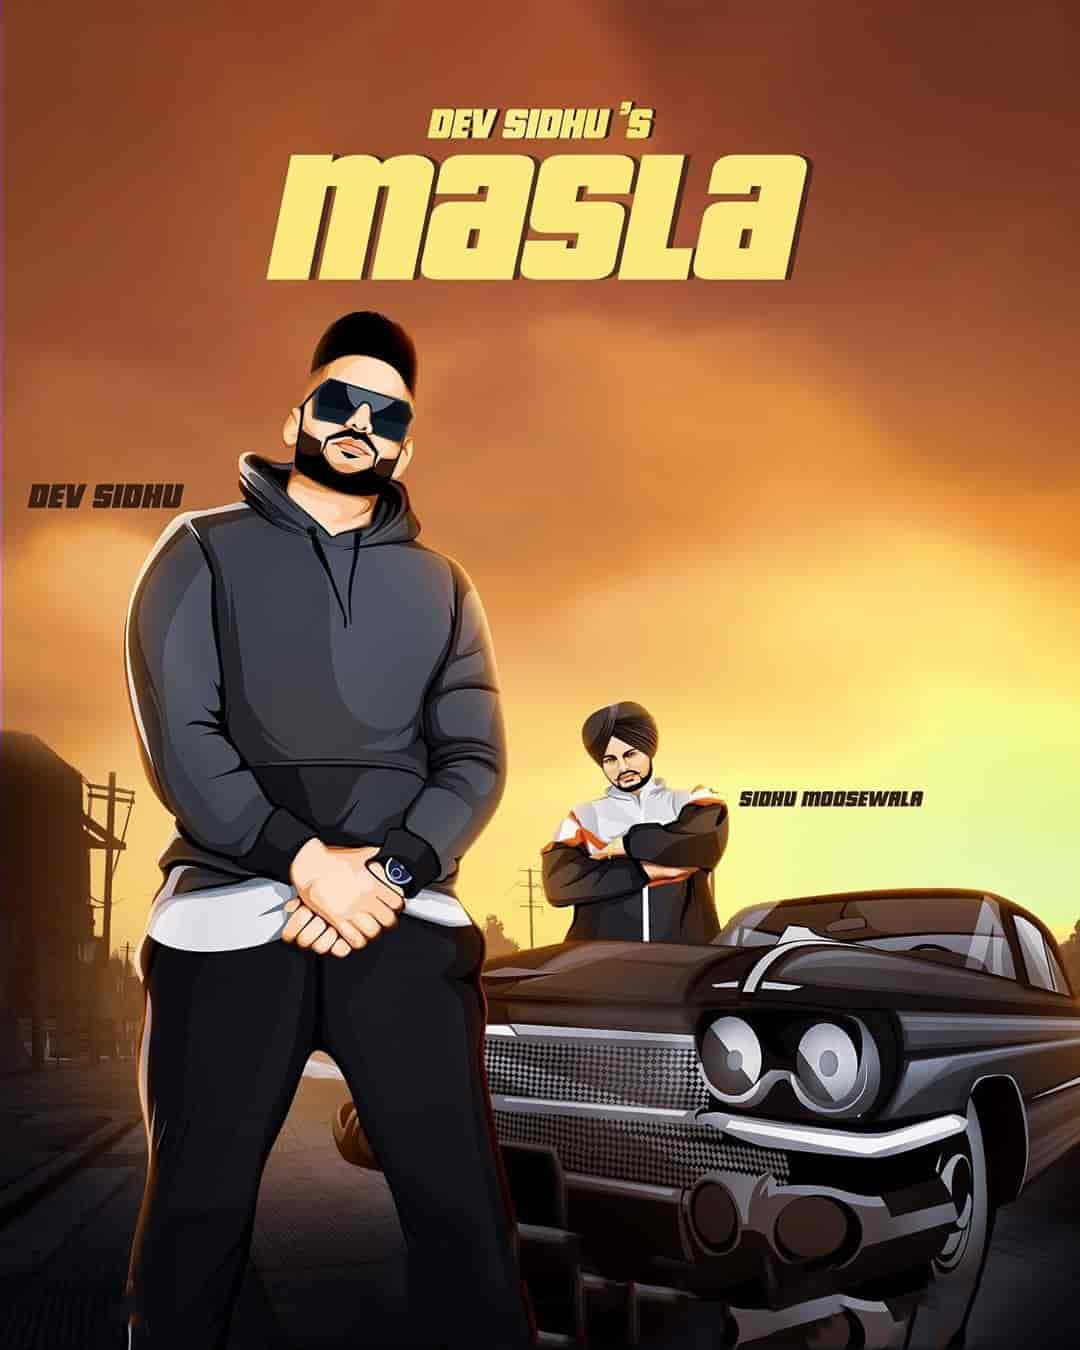 Masla Punjabi Song Image By Dev Sidhu and Sidhu Moose Wala